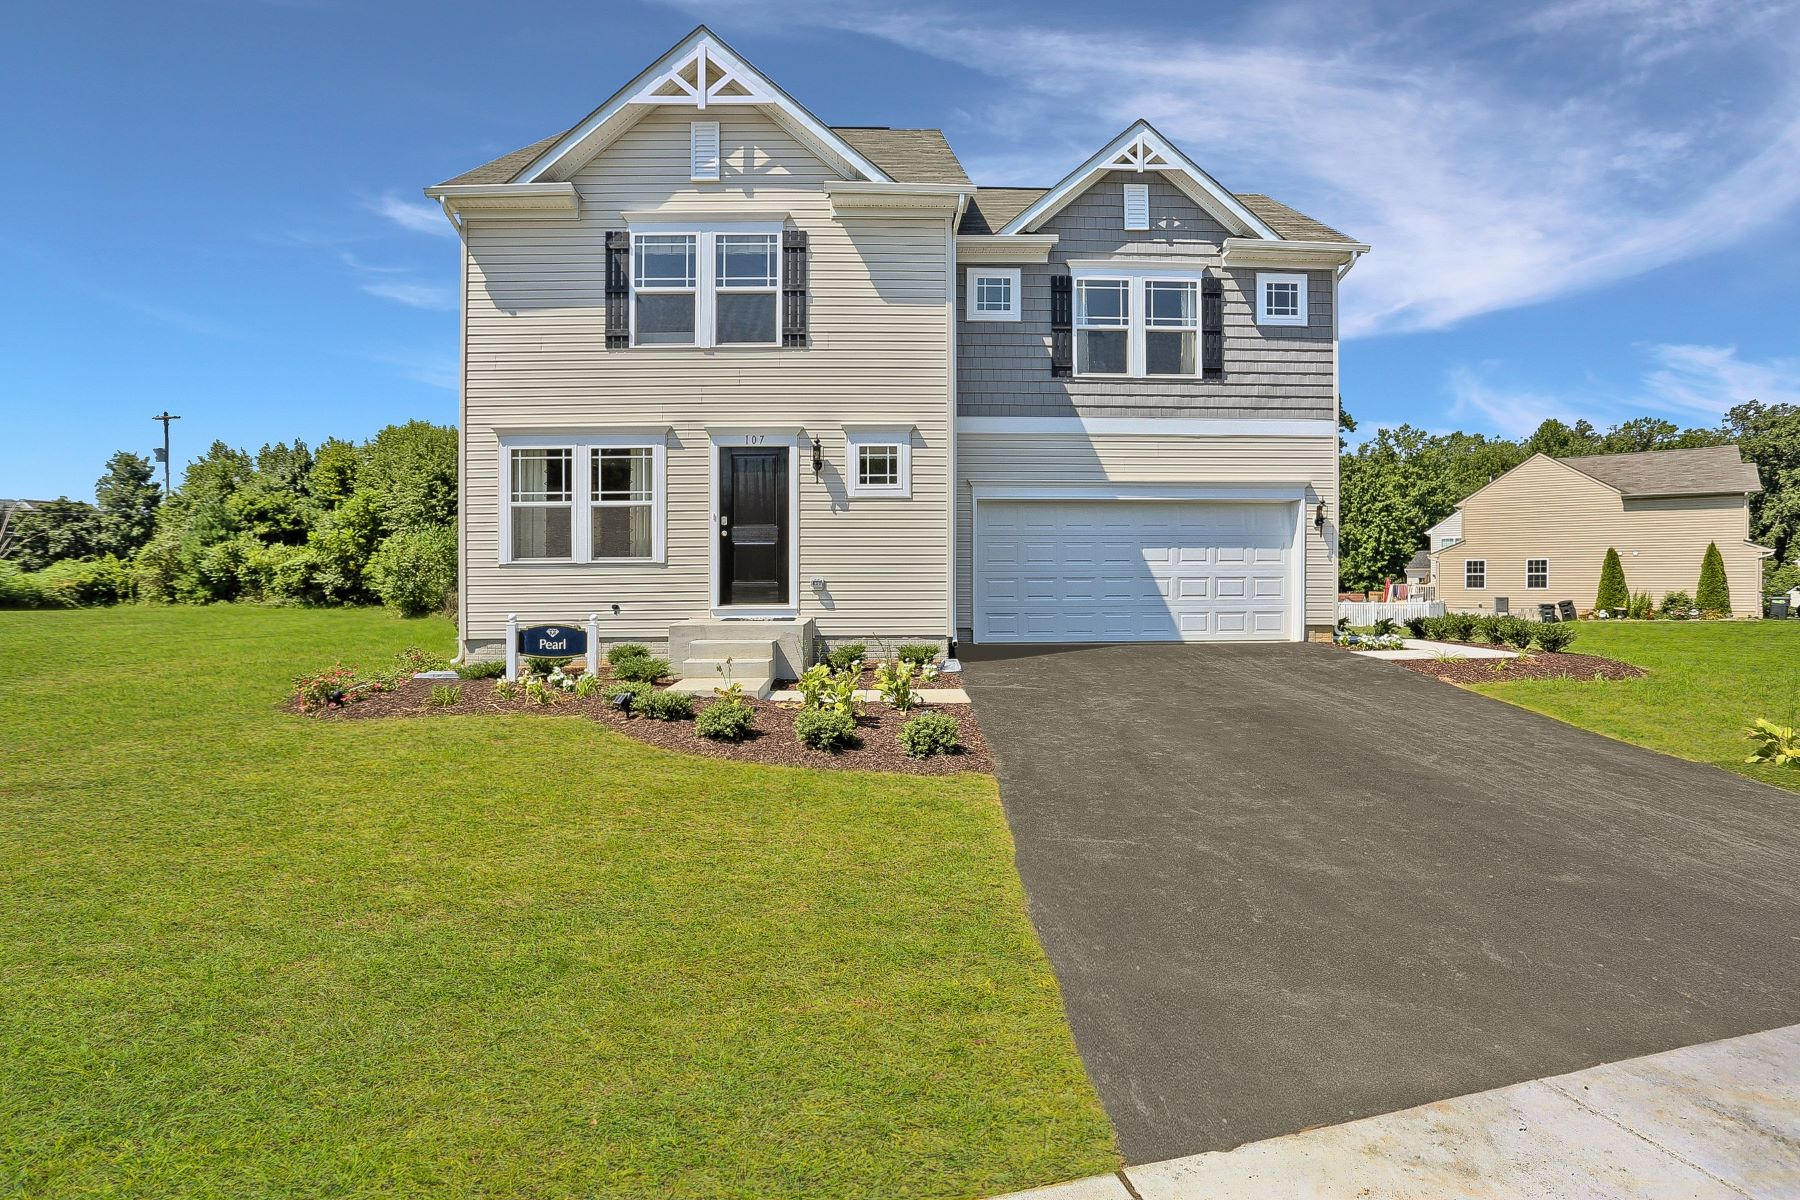 Single Family Homes のために 売買 アット Captain's Cove Colonial-The Pearl Lot 1110 Amidship Drive, Greenbackville, バージニア 23356 アメリカ